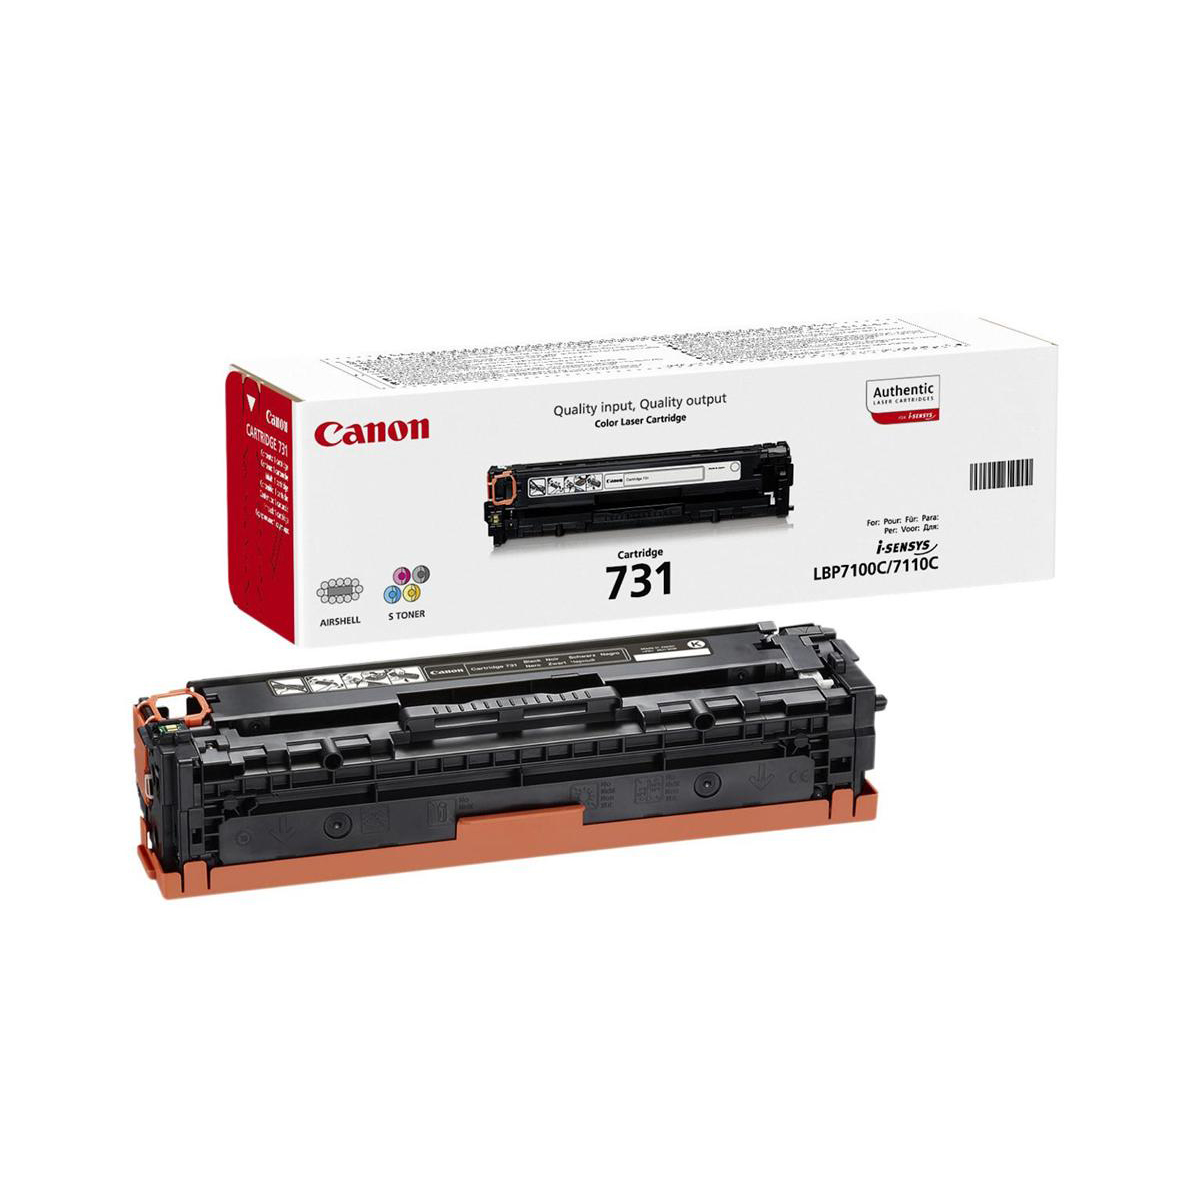 Canon 731 Laser Toner Cartridge Page Life 1500pp Cyan Ref 731C